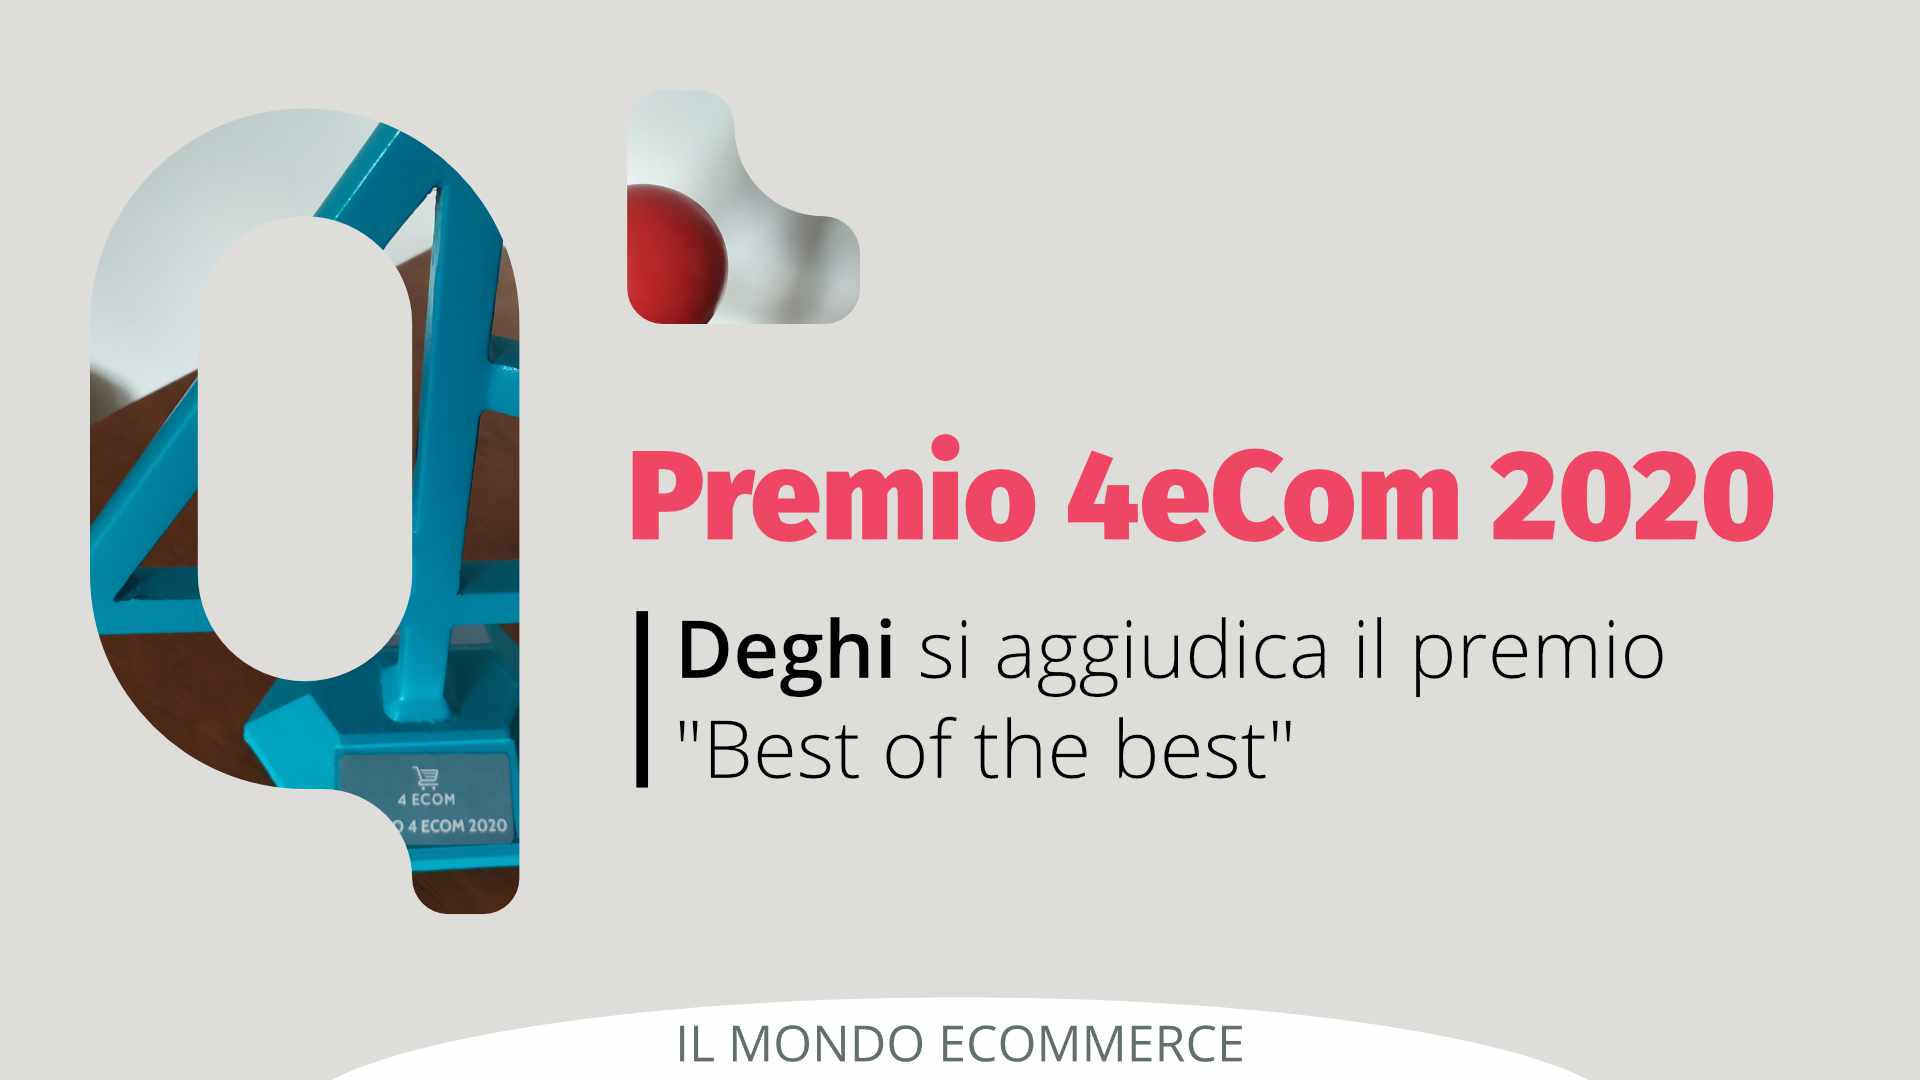 Premio 4eCom 2020: trionfa Deghi come Best of the Best